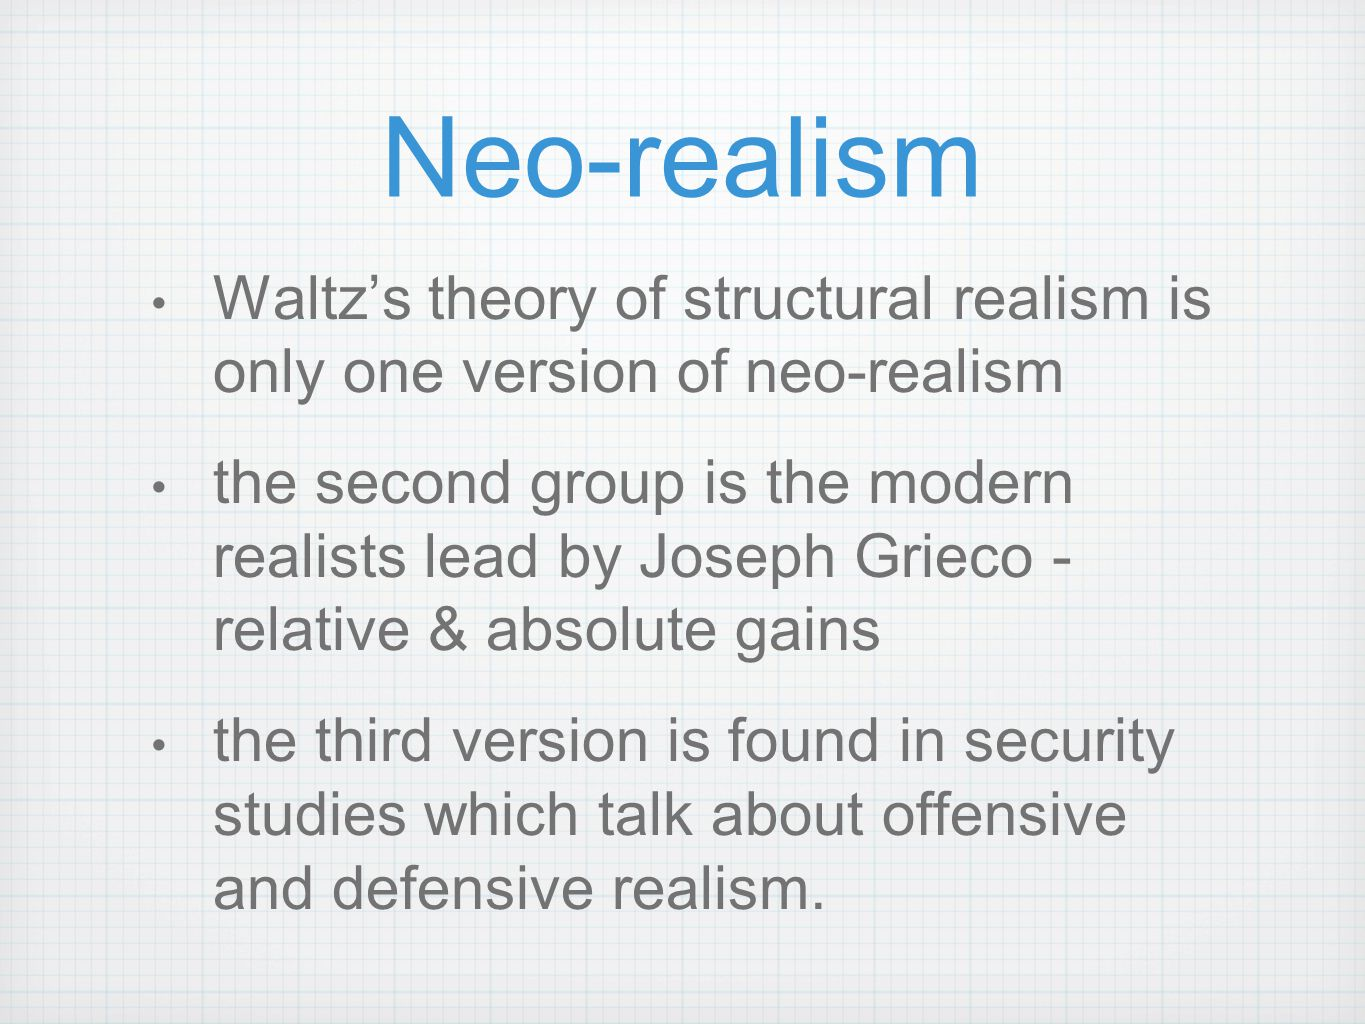 Neo-realism Waltz's theory of structural realism is only one version of neo-realism.